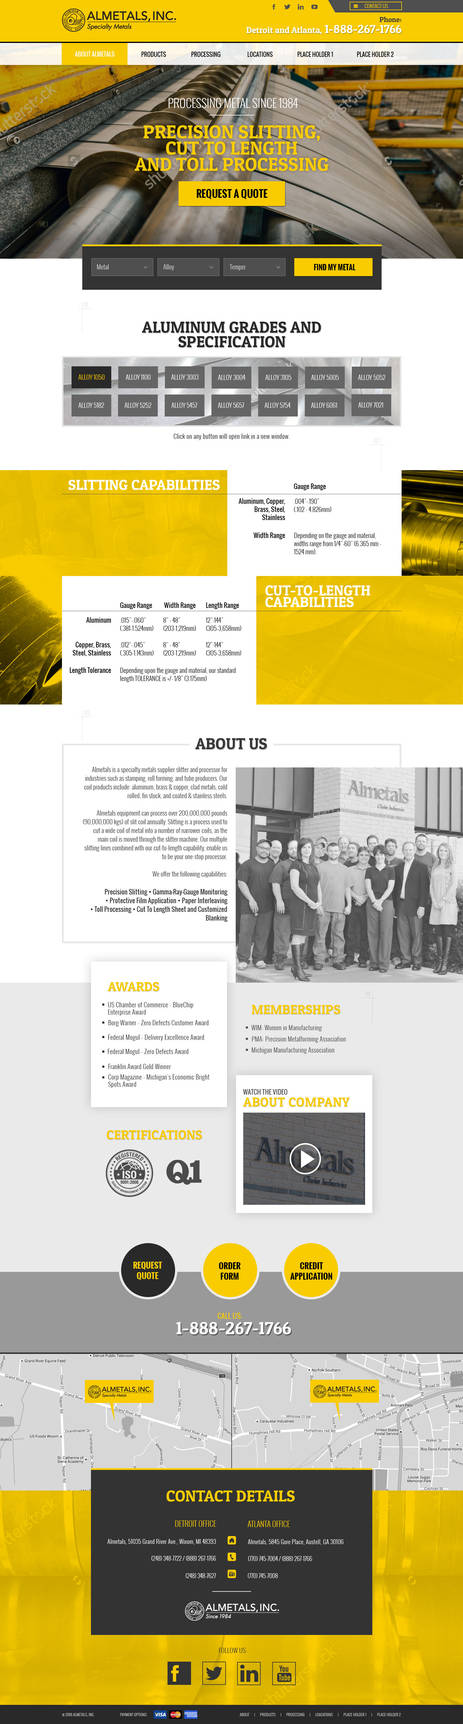 Almetals-website-rev13